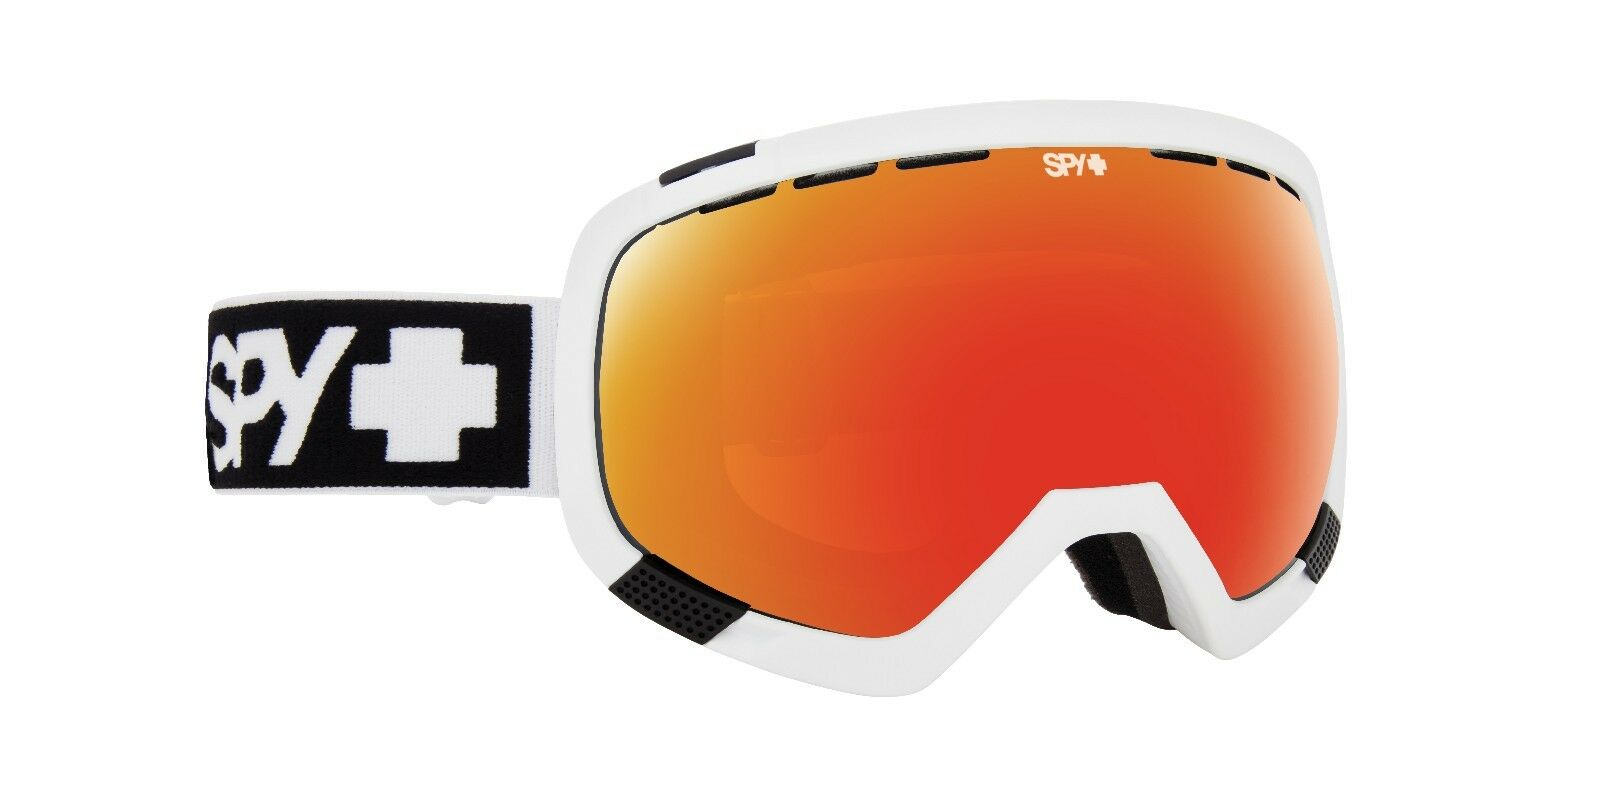 Spy PLATOON Matte White w  Red Spectra  Snow Goggles - Free Express. Post